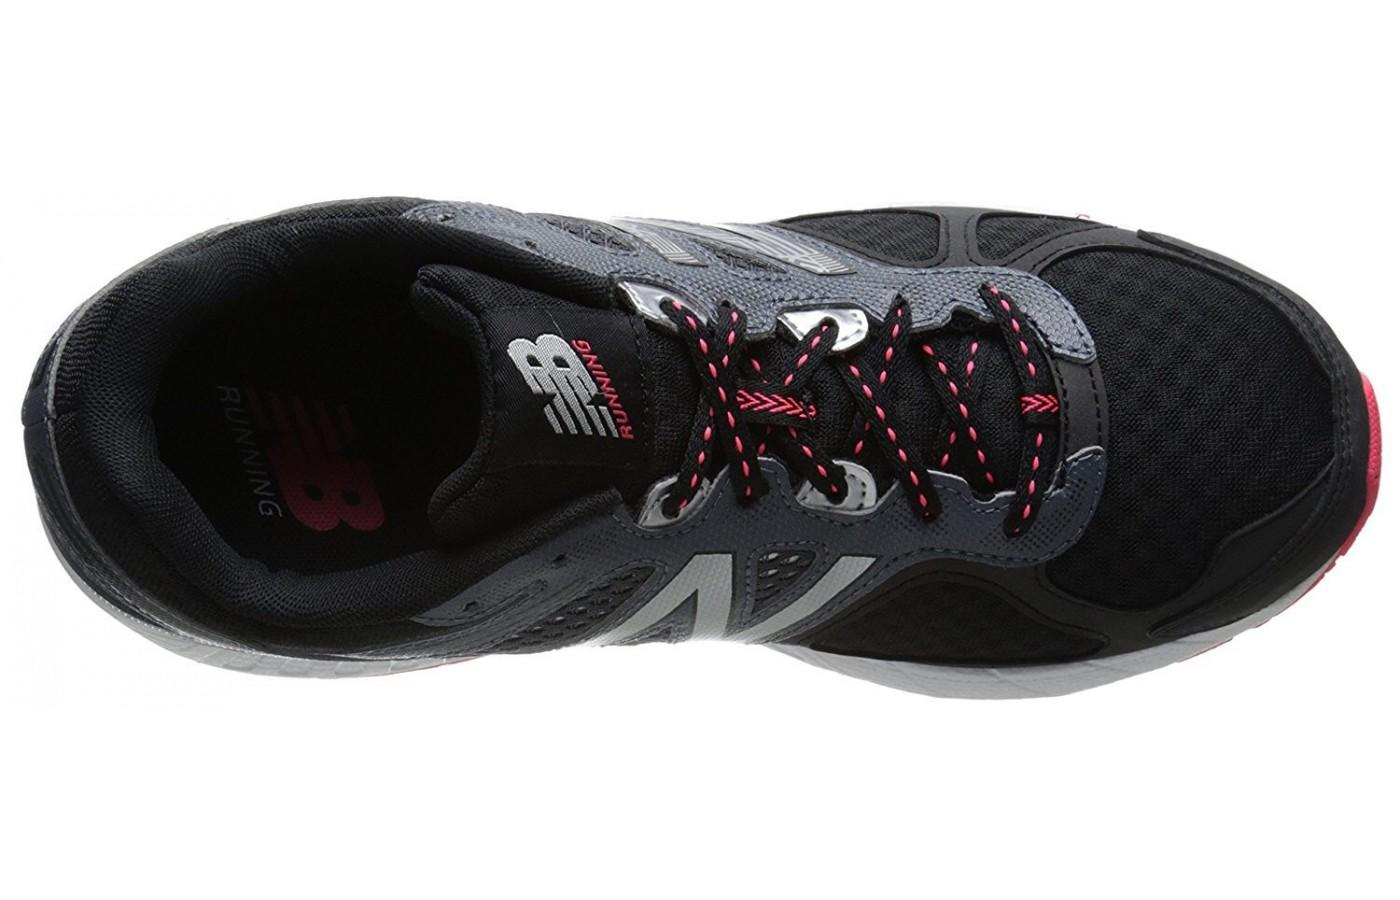 new balance 1400 v4 runner's world